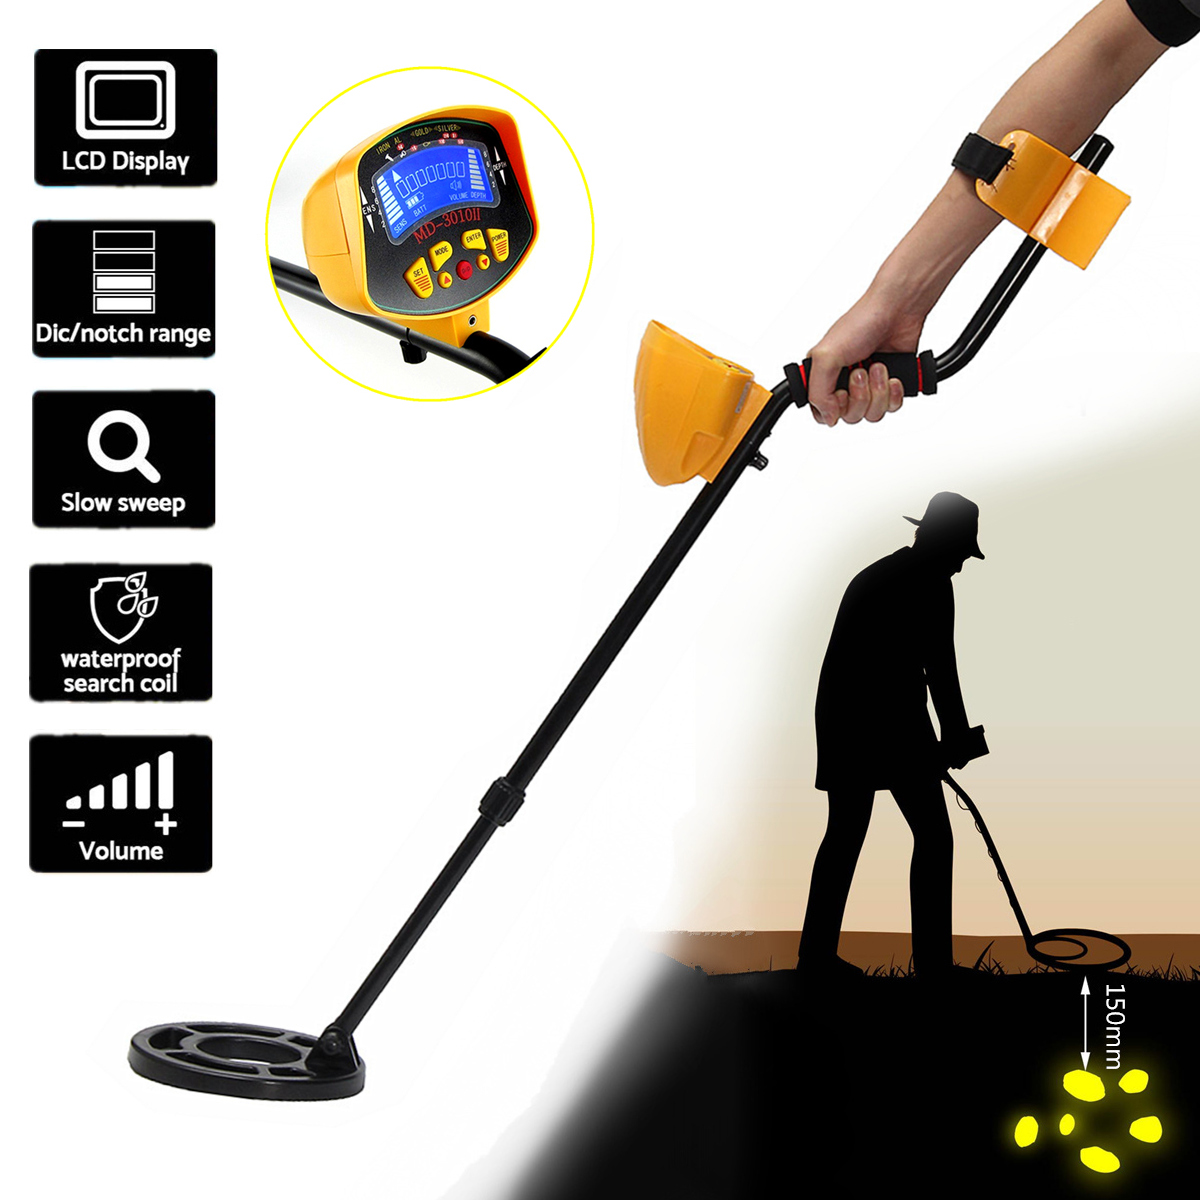 Professional Metal Detector Underground Depth Scanner Search Finder Gold Detector Treasure Hunter Detecting Pointer Waterproof new underground metal detector search scanner pinpointinter gold detector treasure hunter pinpointer finder wiring detector